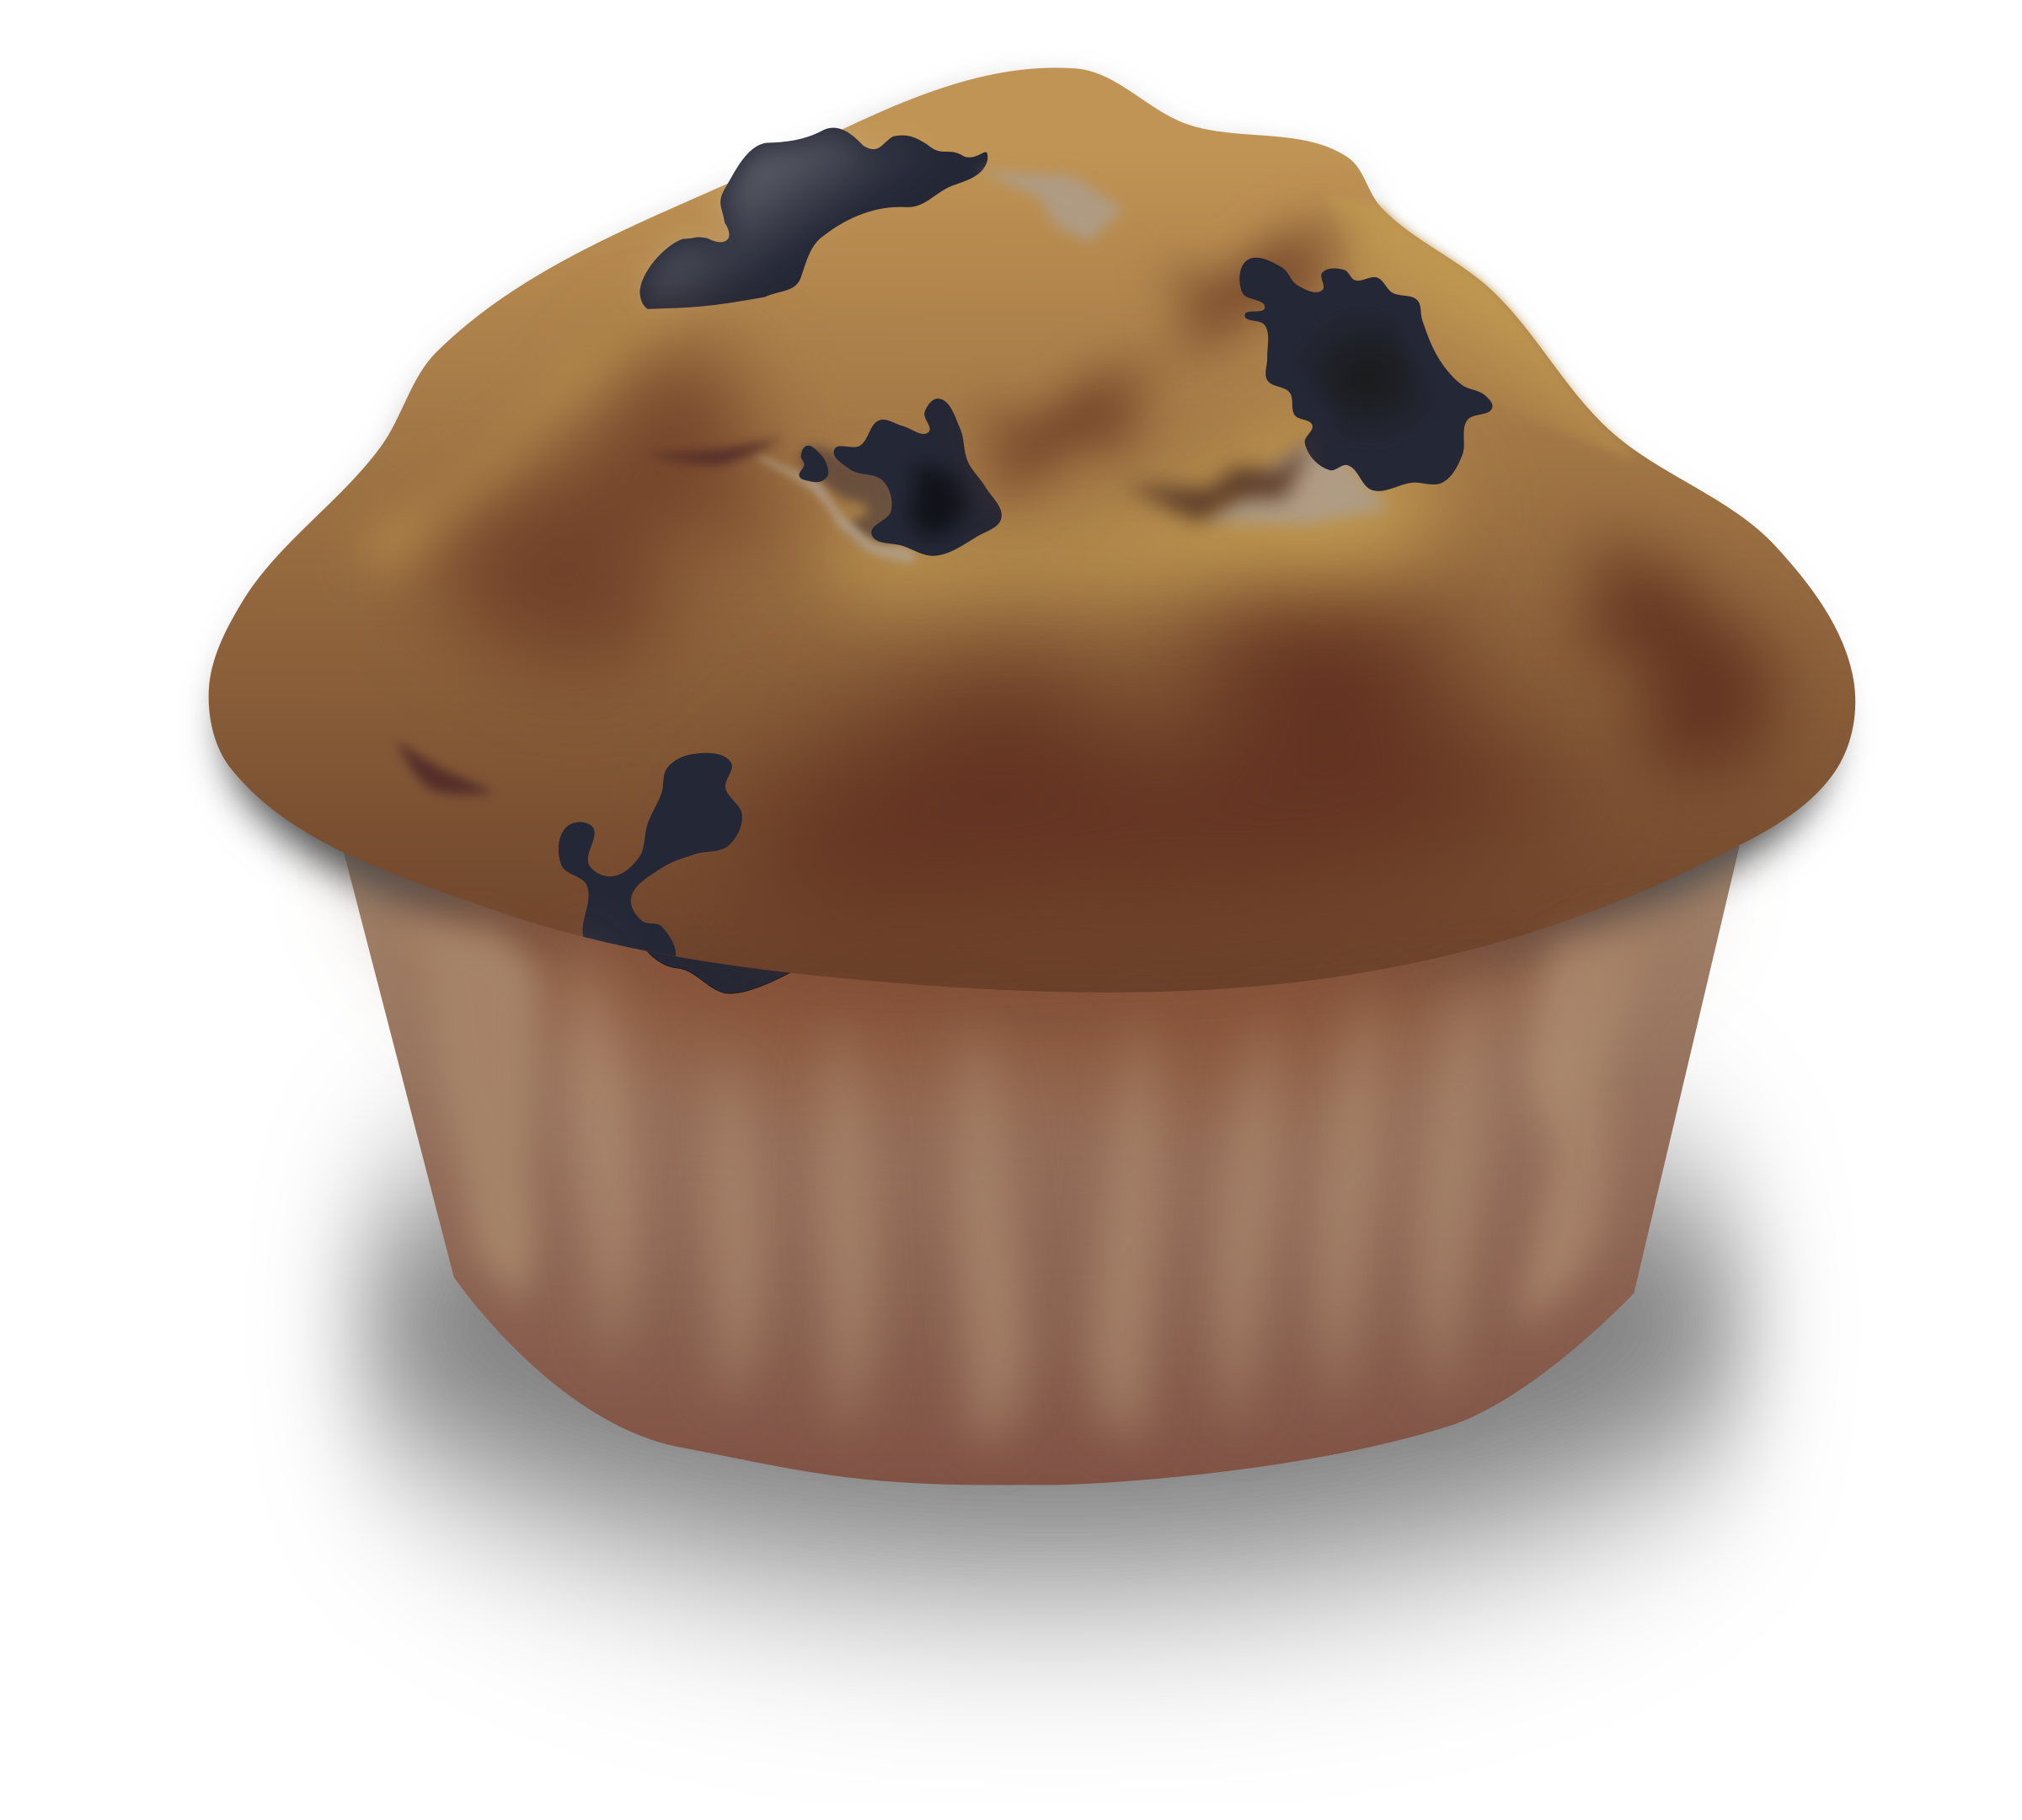 Muffin clipart baking muffin. Blueberry big image png